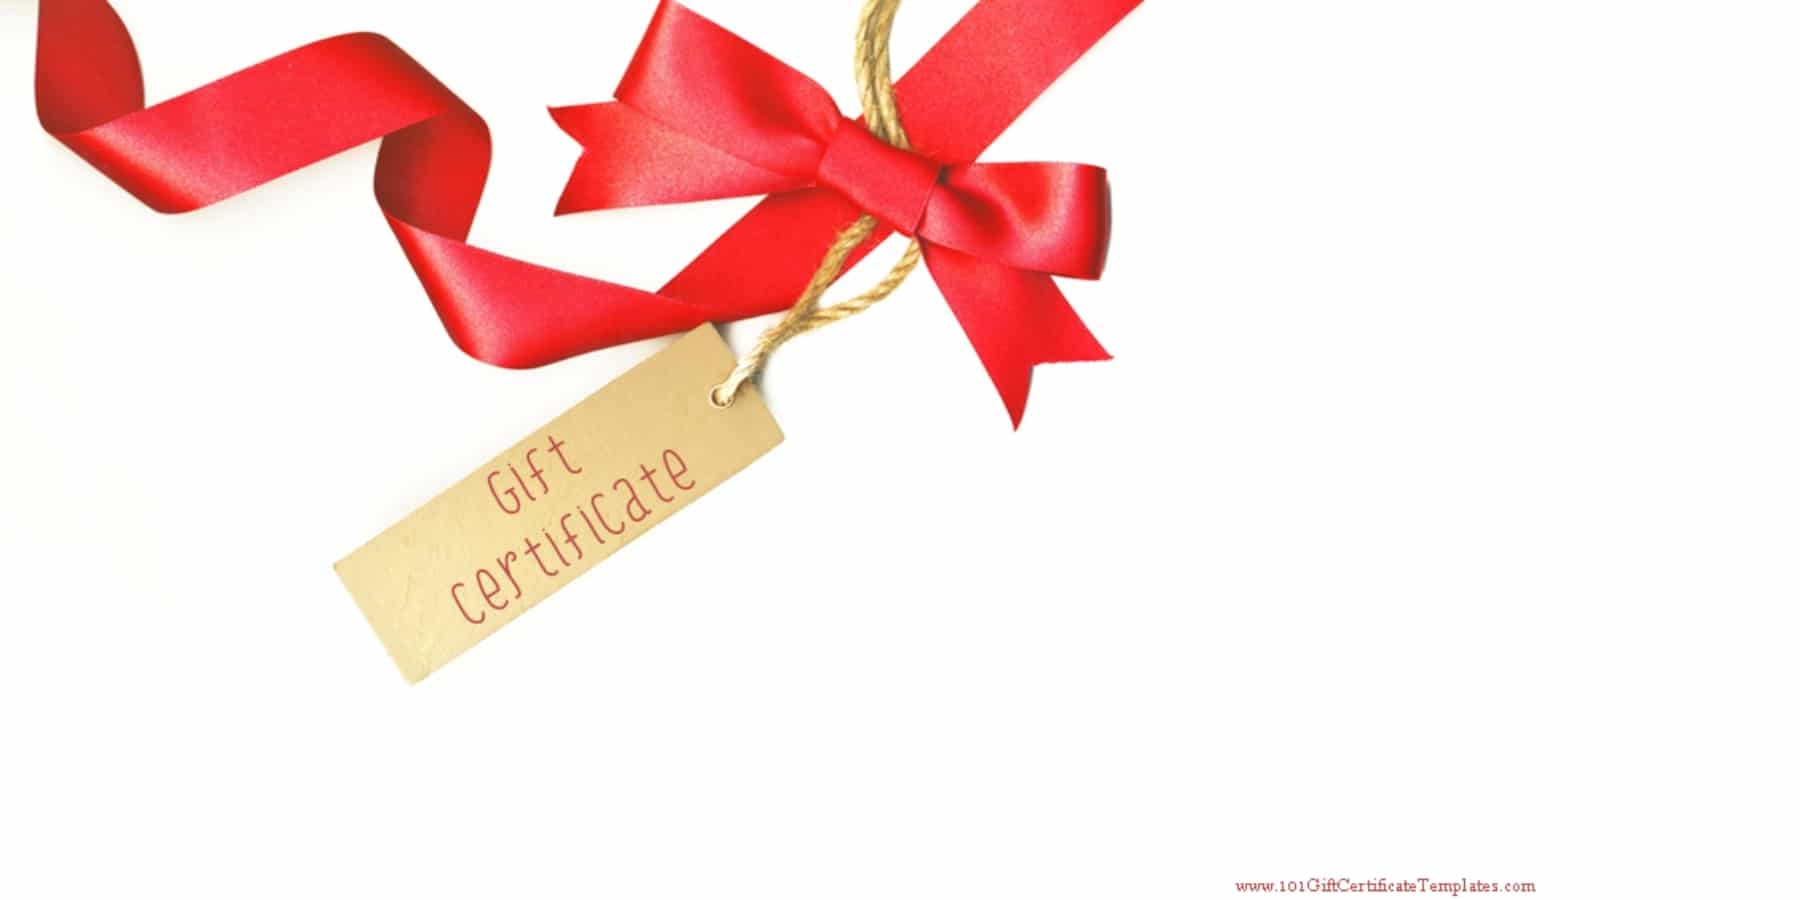 Printable gift certificate templates gift card which can be customized in any way with our gift card maker yadclub Image collections